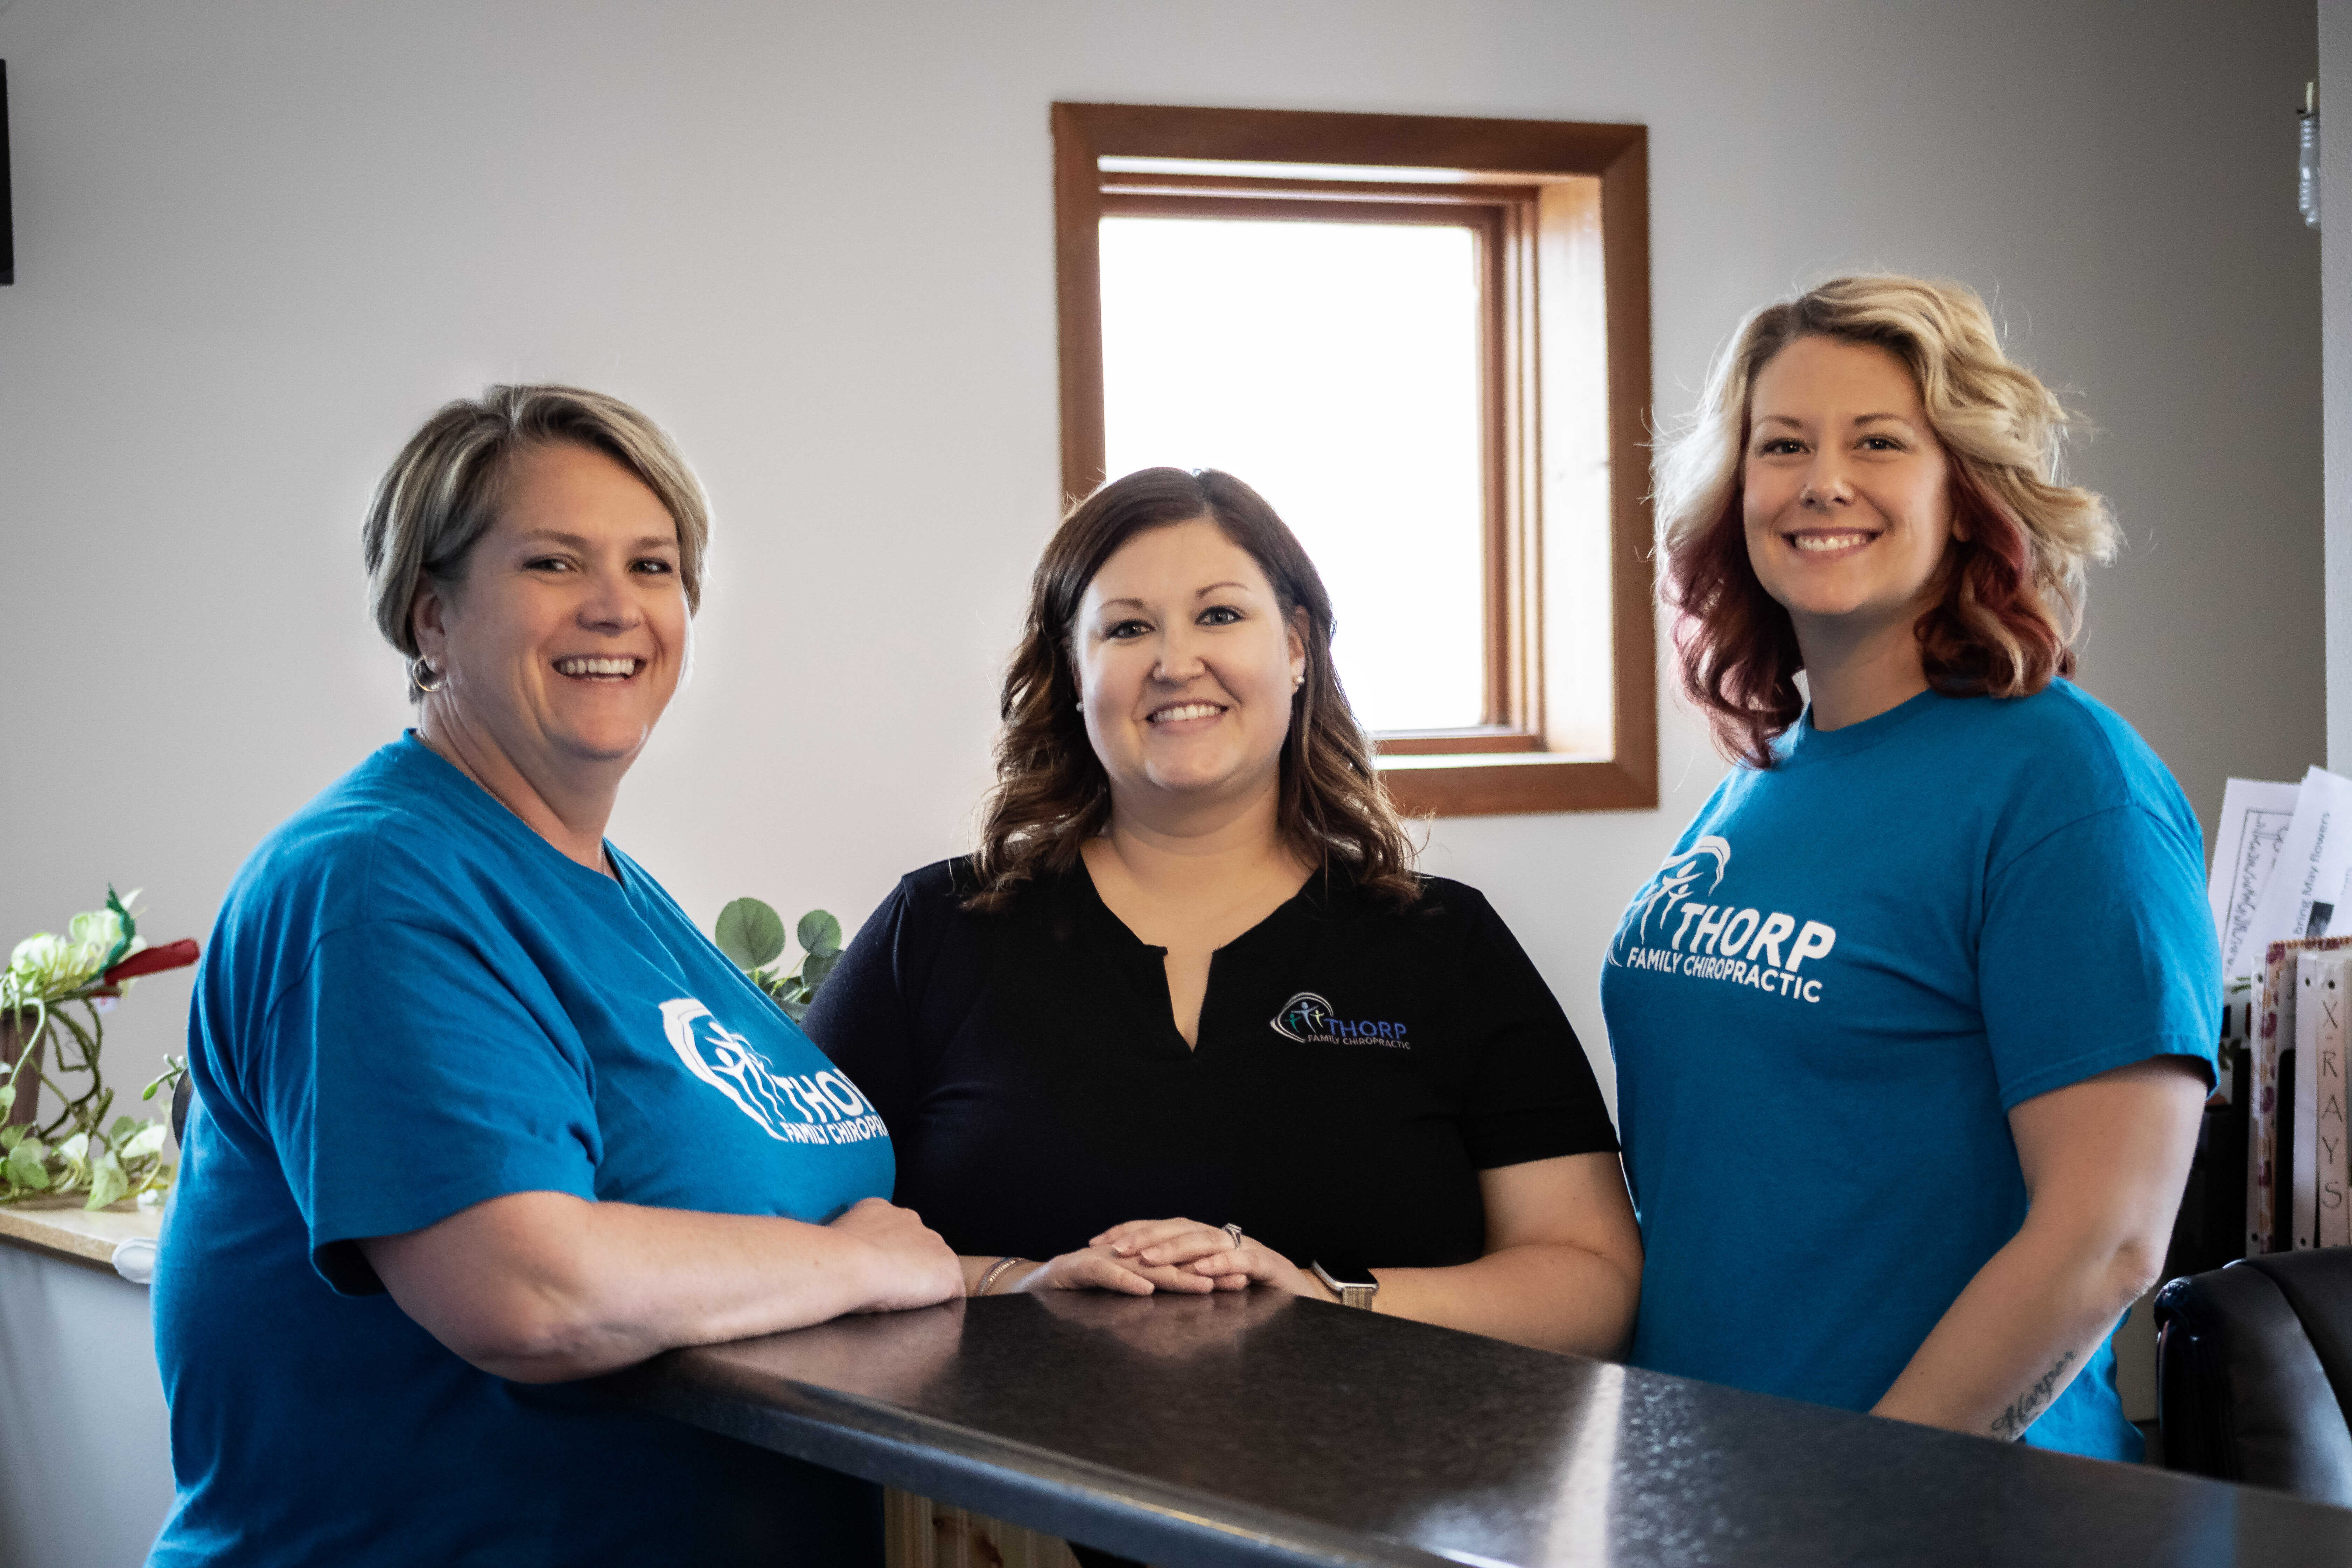 Thorp Family Chiropractic team